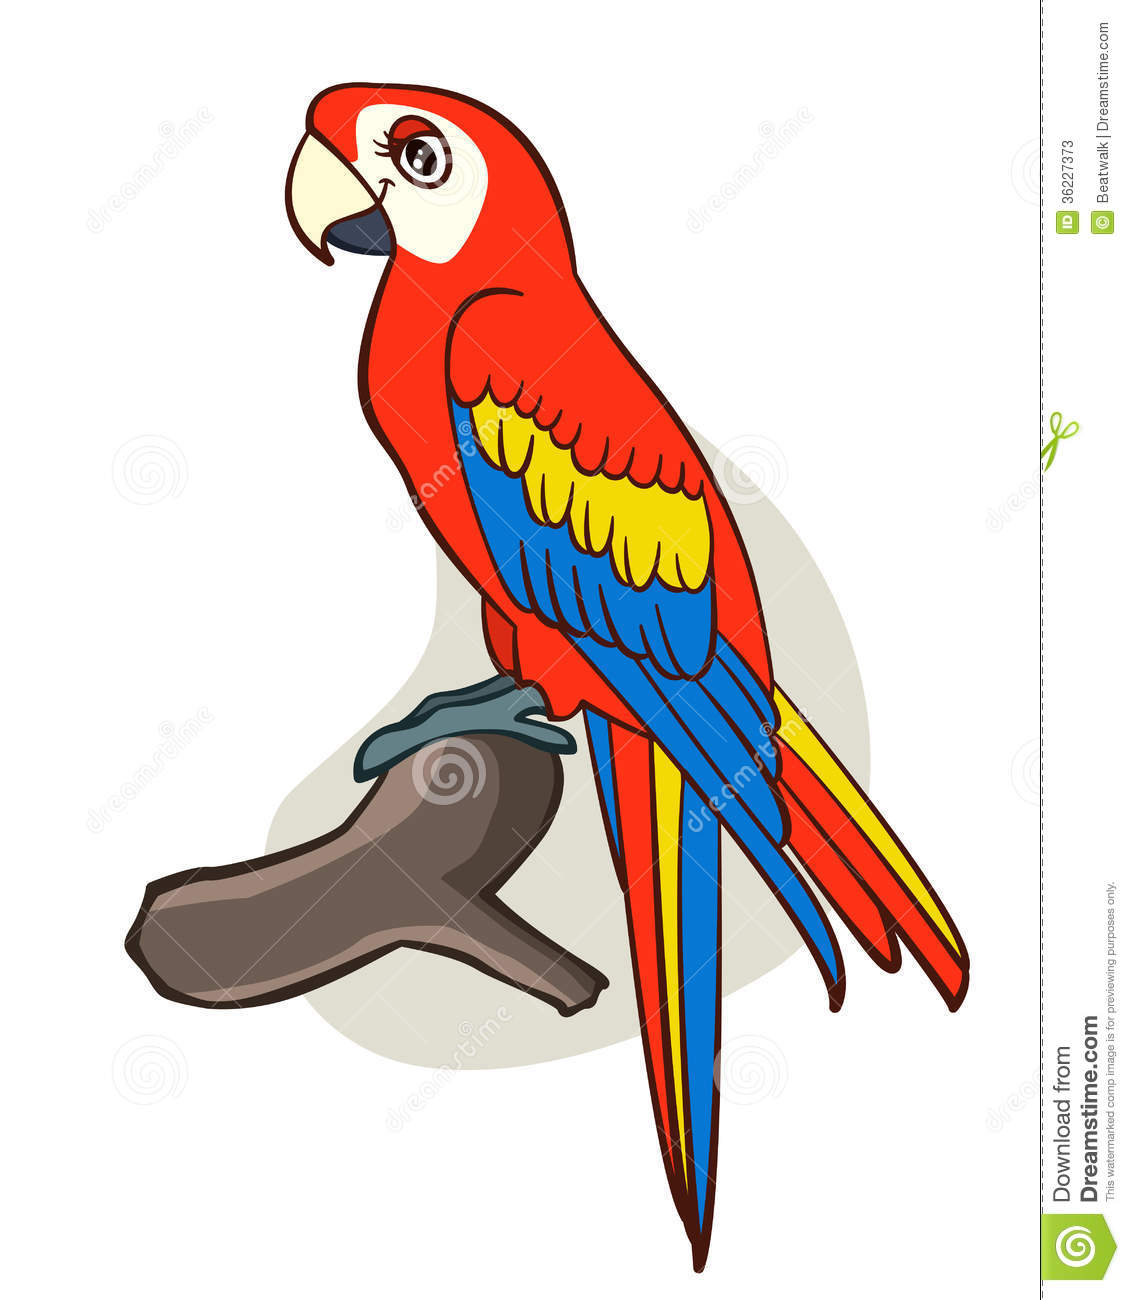 Cartoon Parrot Clipart - Clipart Suggest